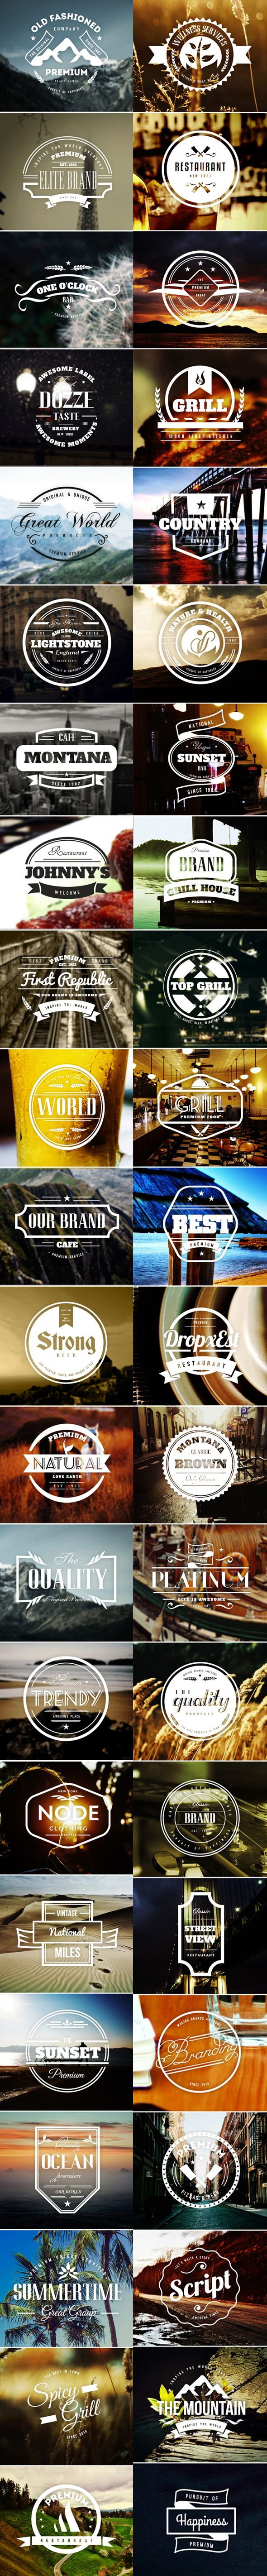 BBW idea 45 Vintage Labels & Badges Logos - Premium Bundle by Design District, via Behance